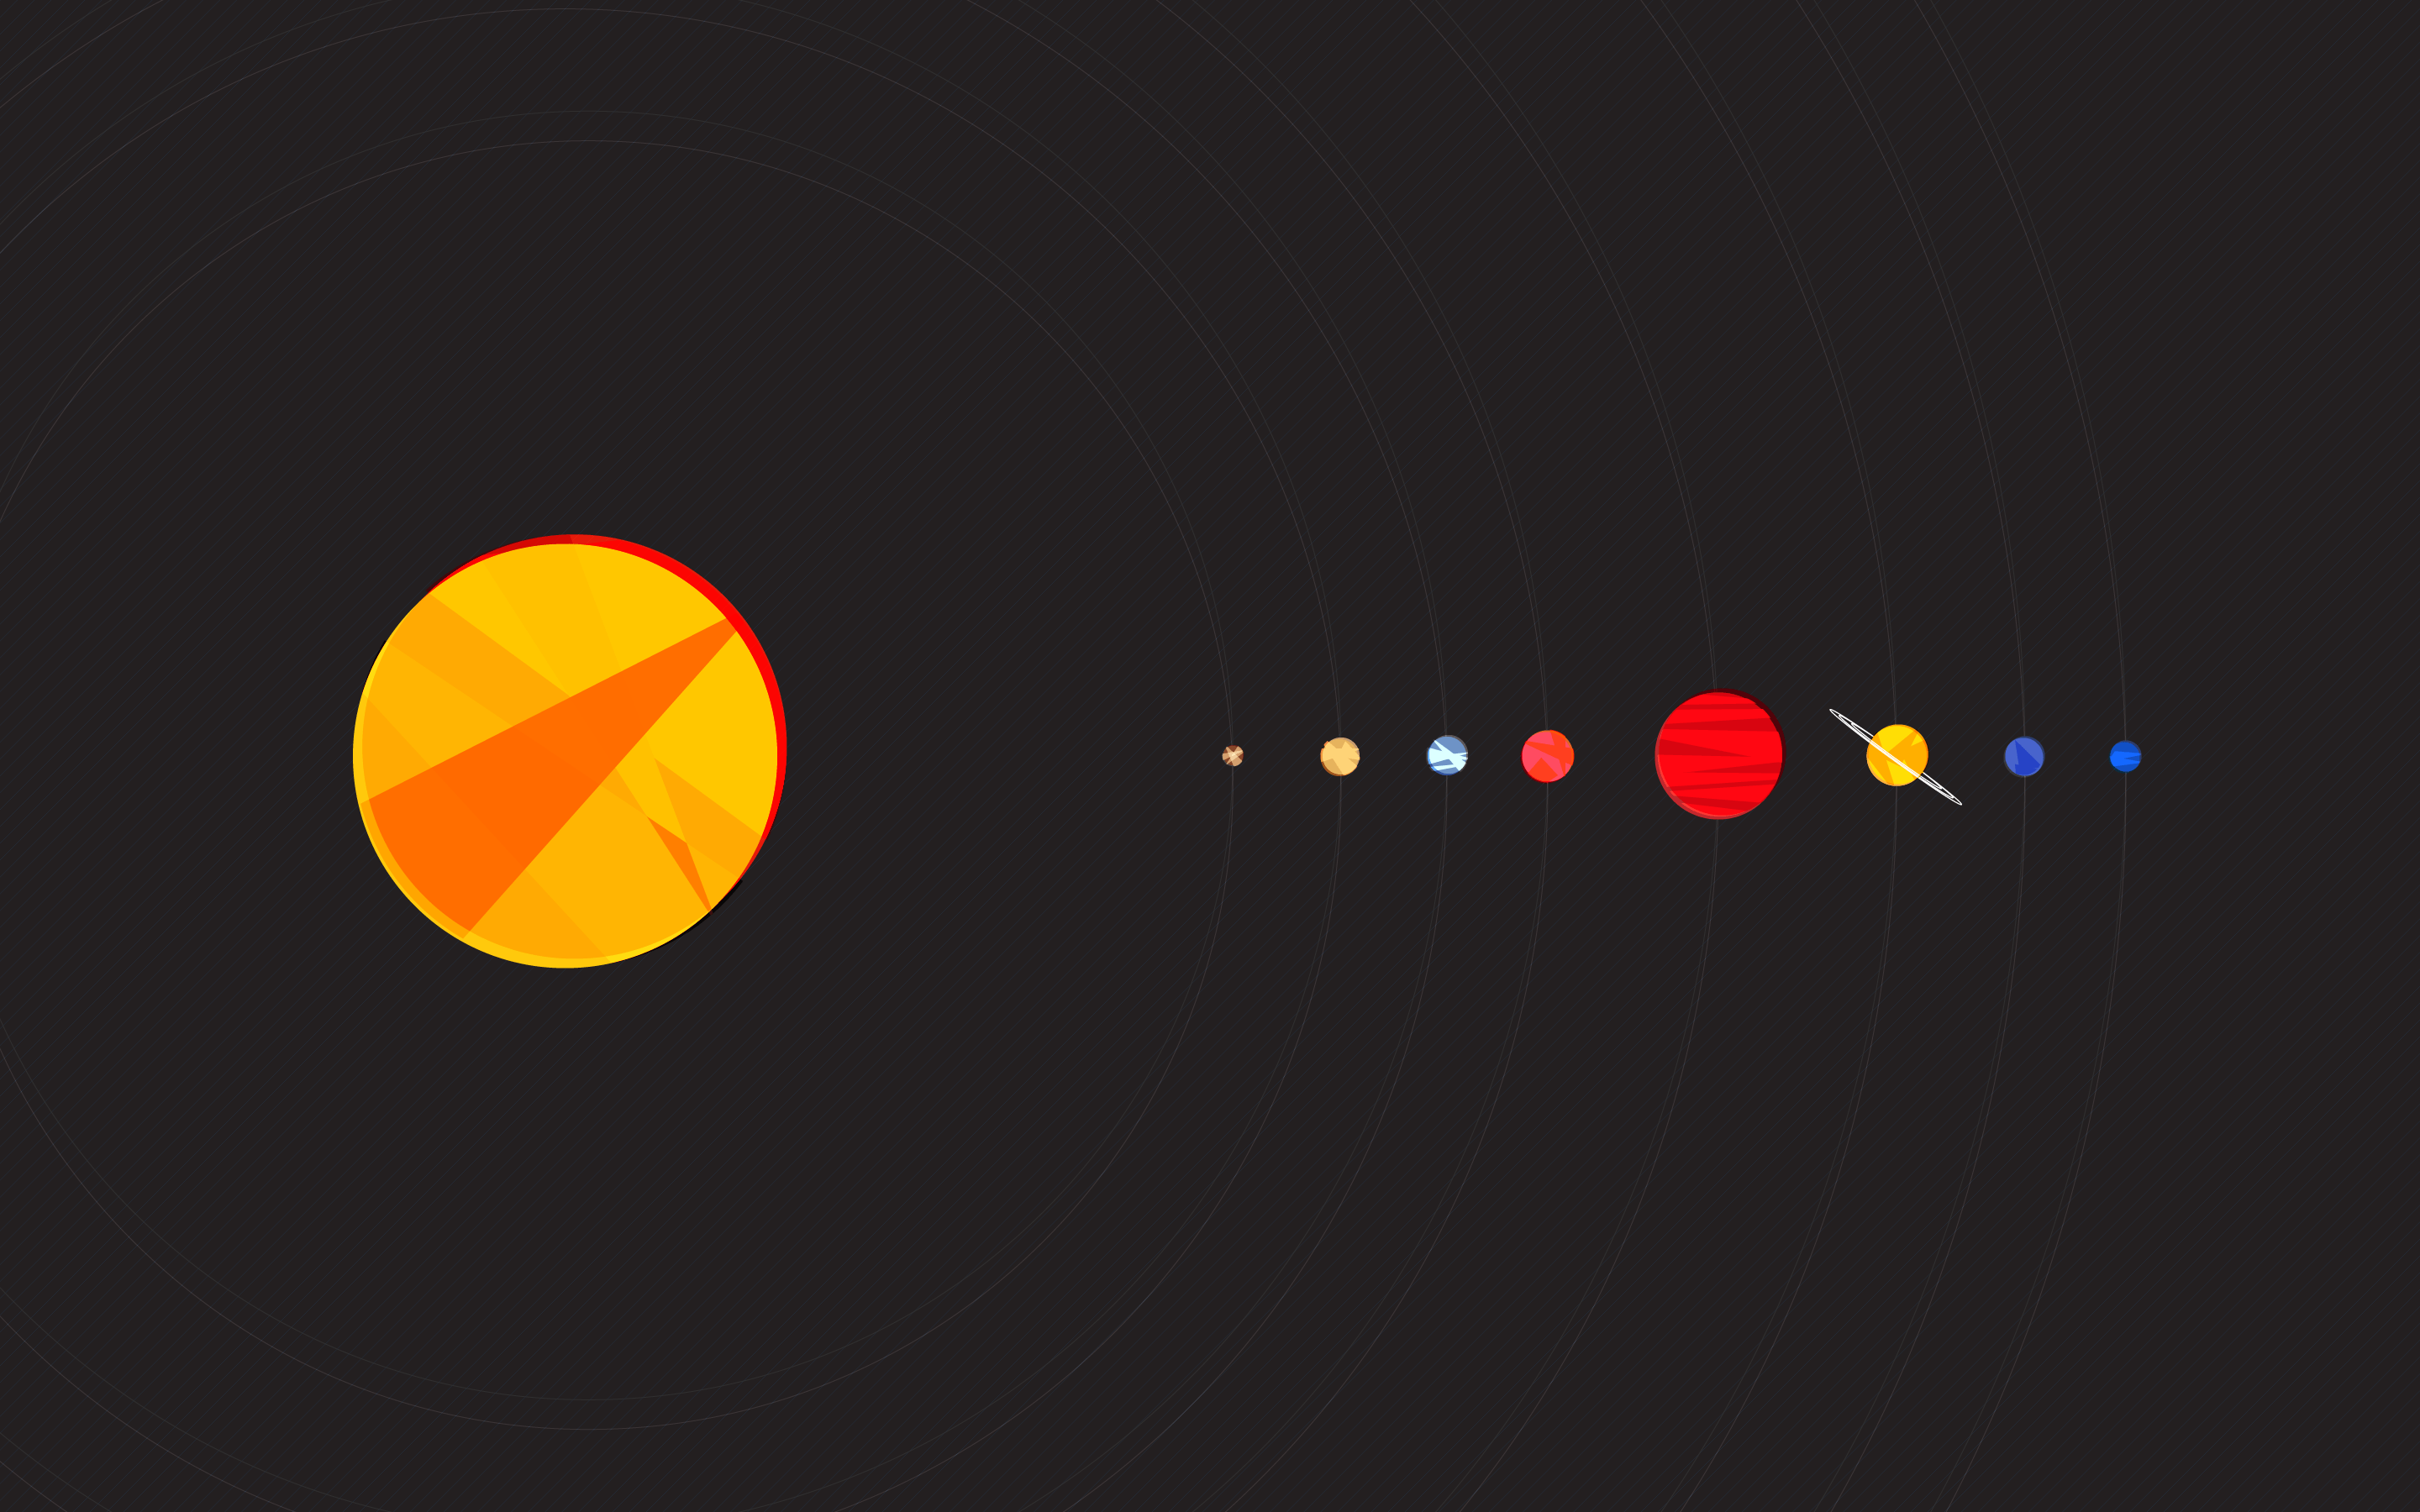 the solar system hd large - photo #38